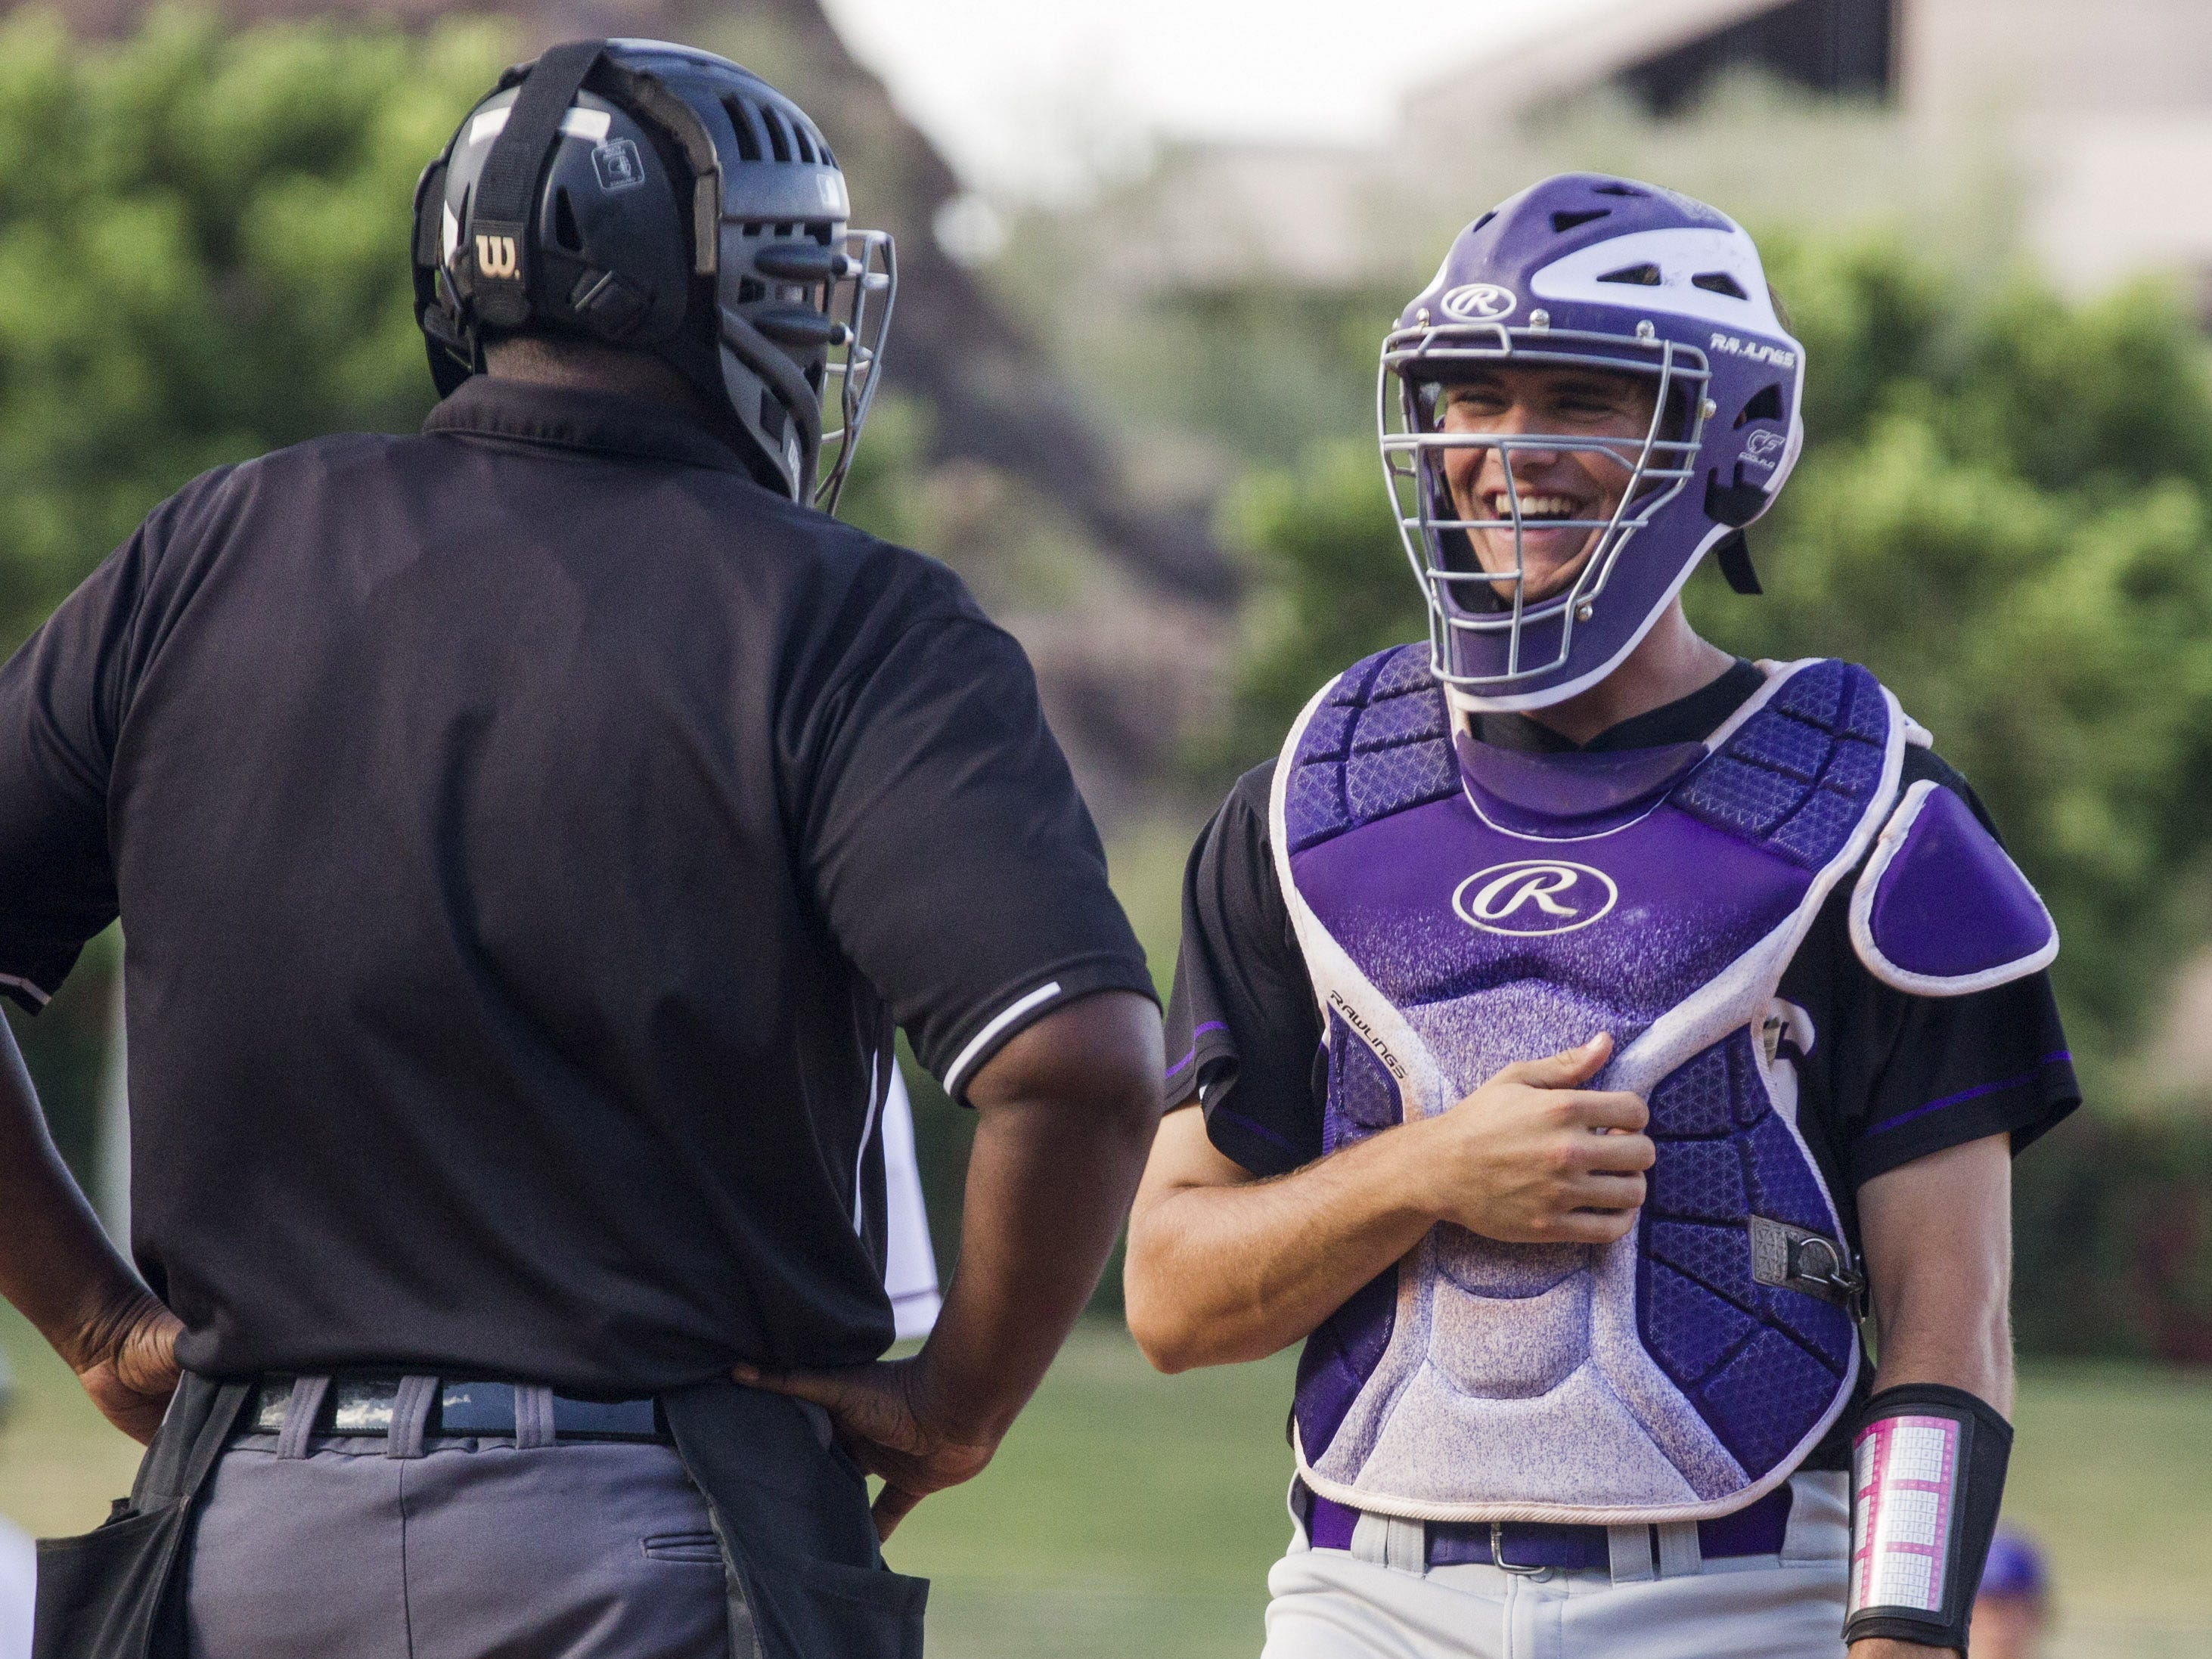 Sunrise Mountain's Ethan Snodgrass shares a laugh with the umpire as they play Desert Mountain during the 5A state baseball second round at Diablo Stadium in Tempe, Arizona, April 29, 2019.